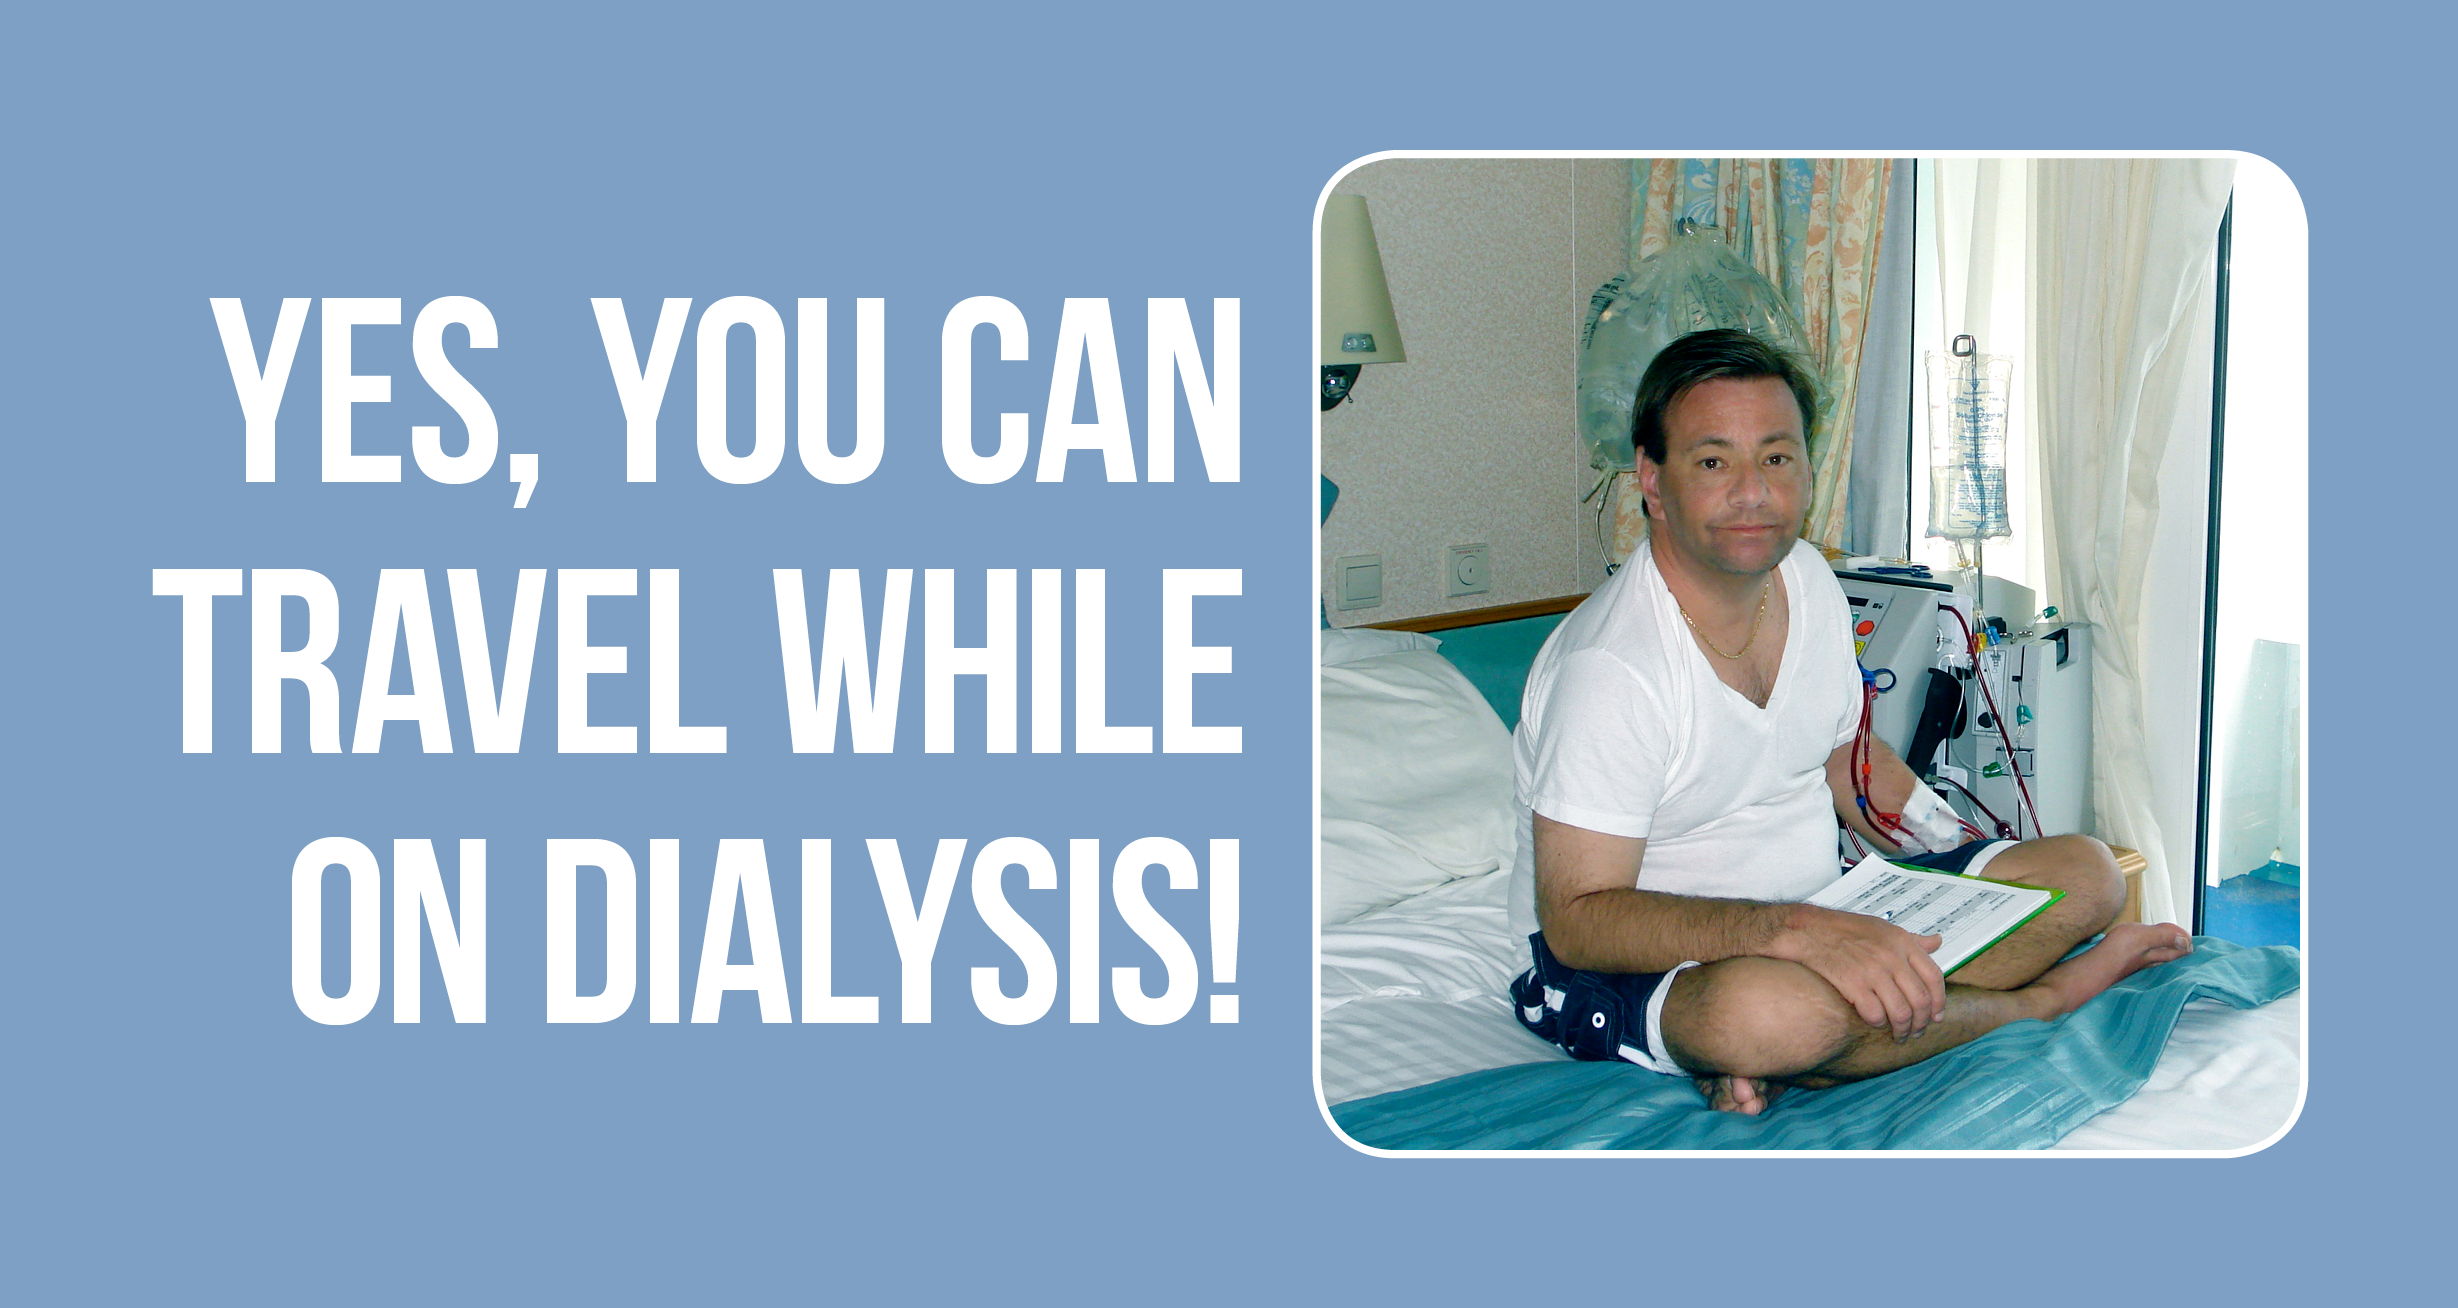 travel-on-dialysis-image